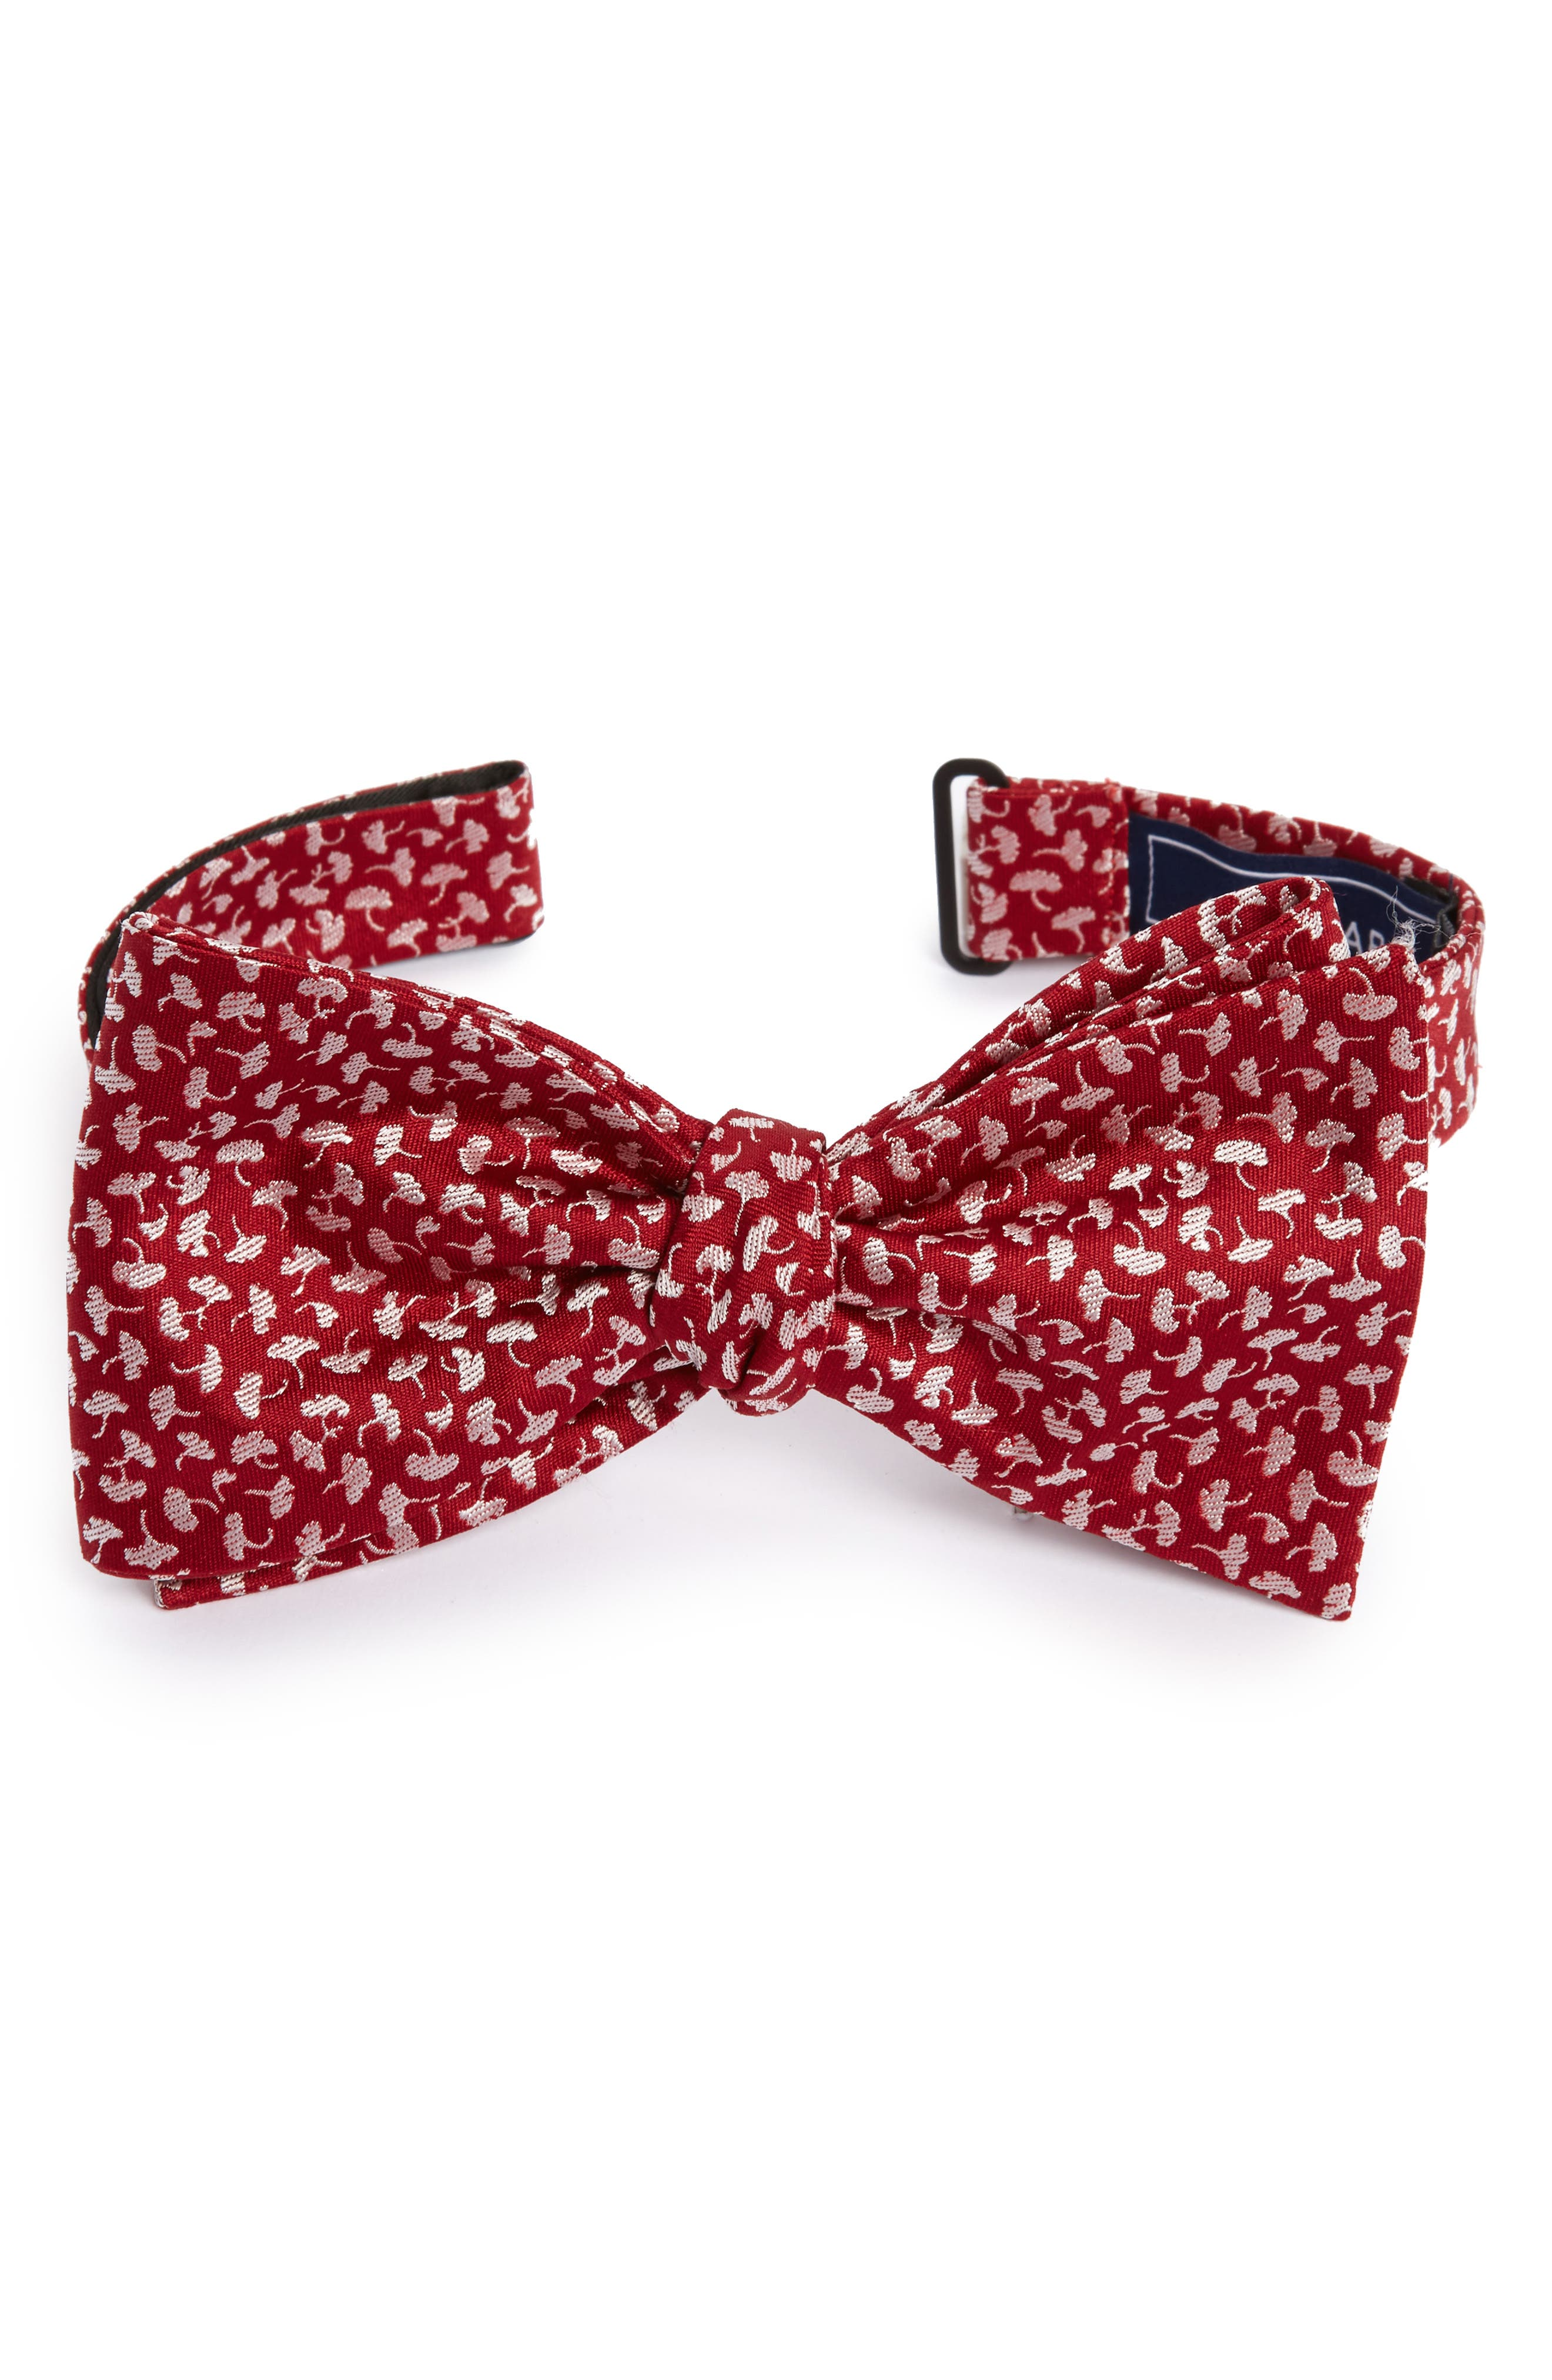 True Floral Silk Bow Tie,                             Main thumbnail 1, color,                             Red